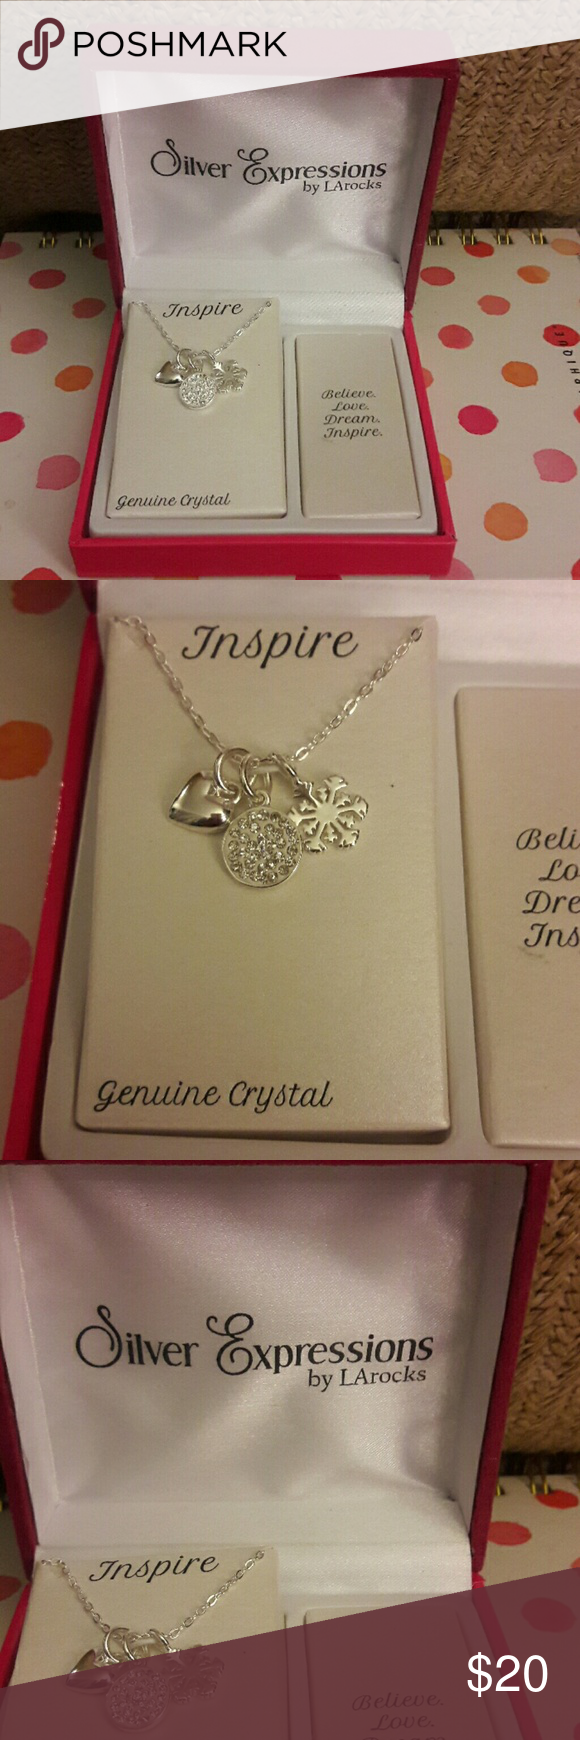 Silver Expressions Inspire Necklace NWT   My Posh Closet   Pinterest     Silver Expressions Inspire Necklace Silver Expressions LA Rocks Inspire  Necklace  18  Silver plated  Has 3 charms  1 heart  1 circle filled with  cubic